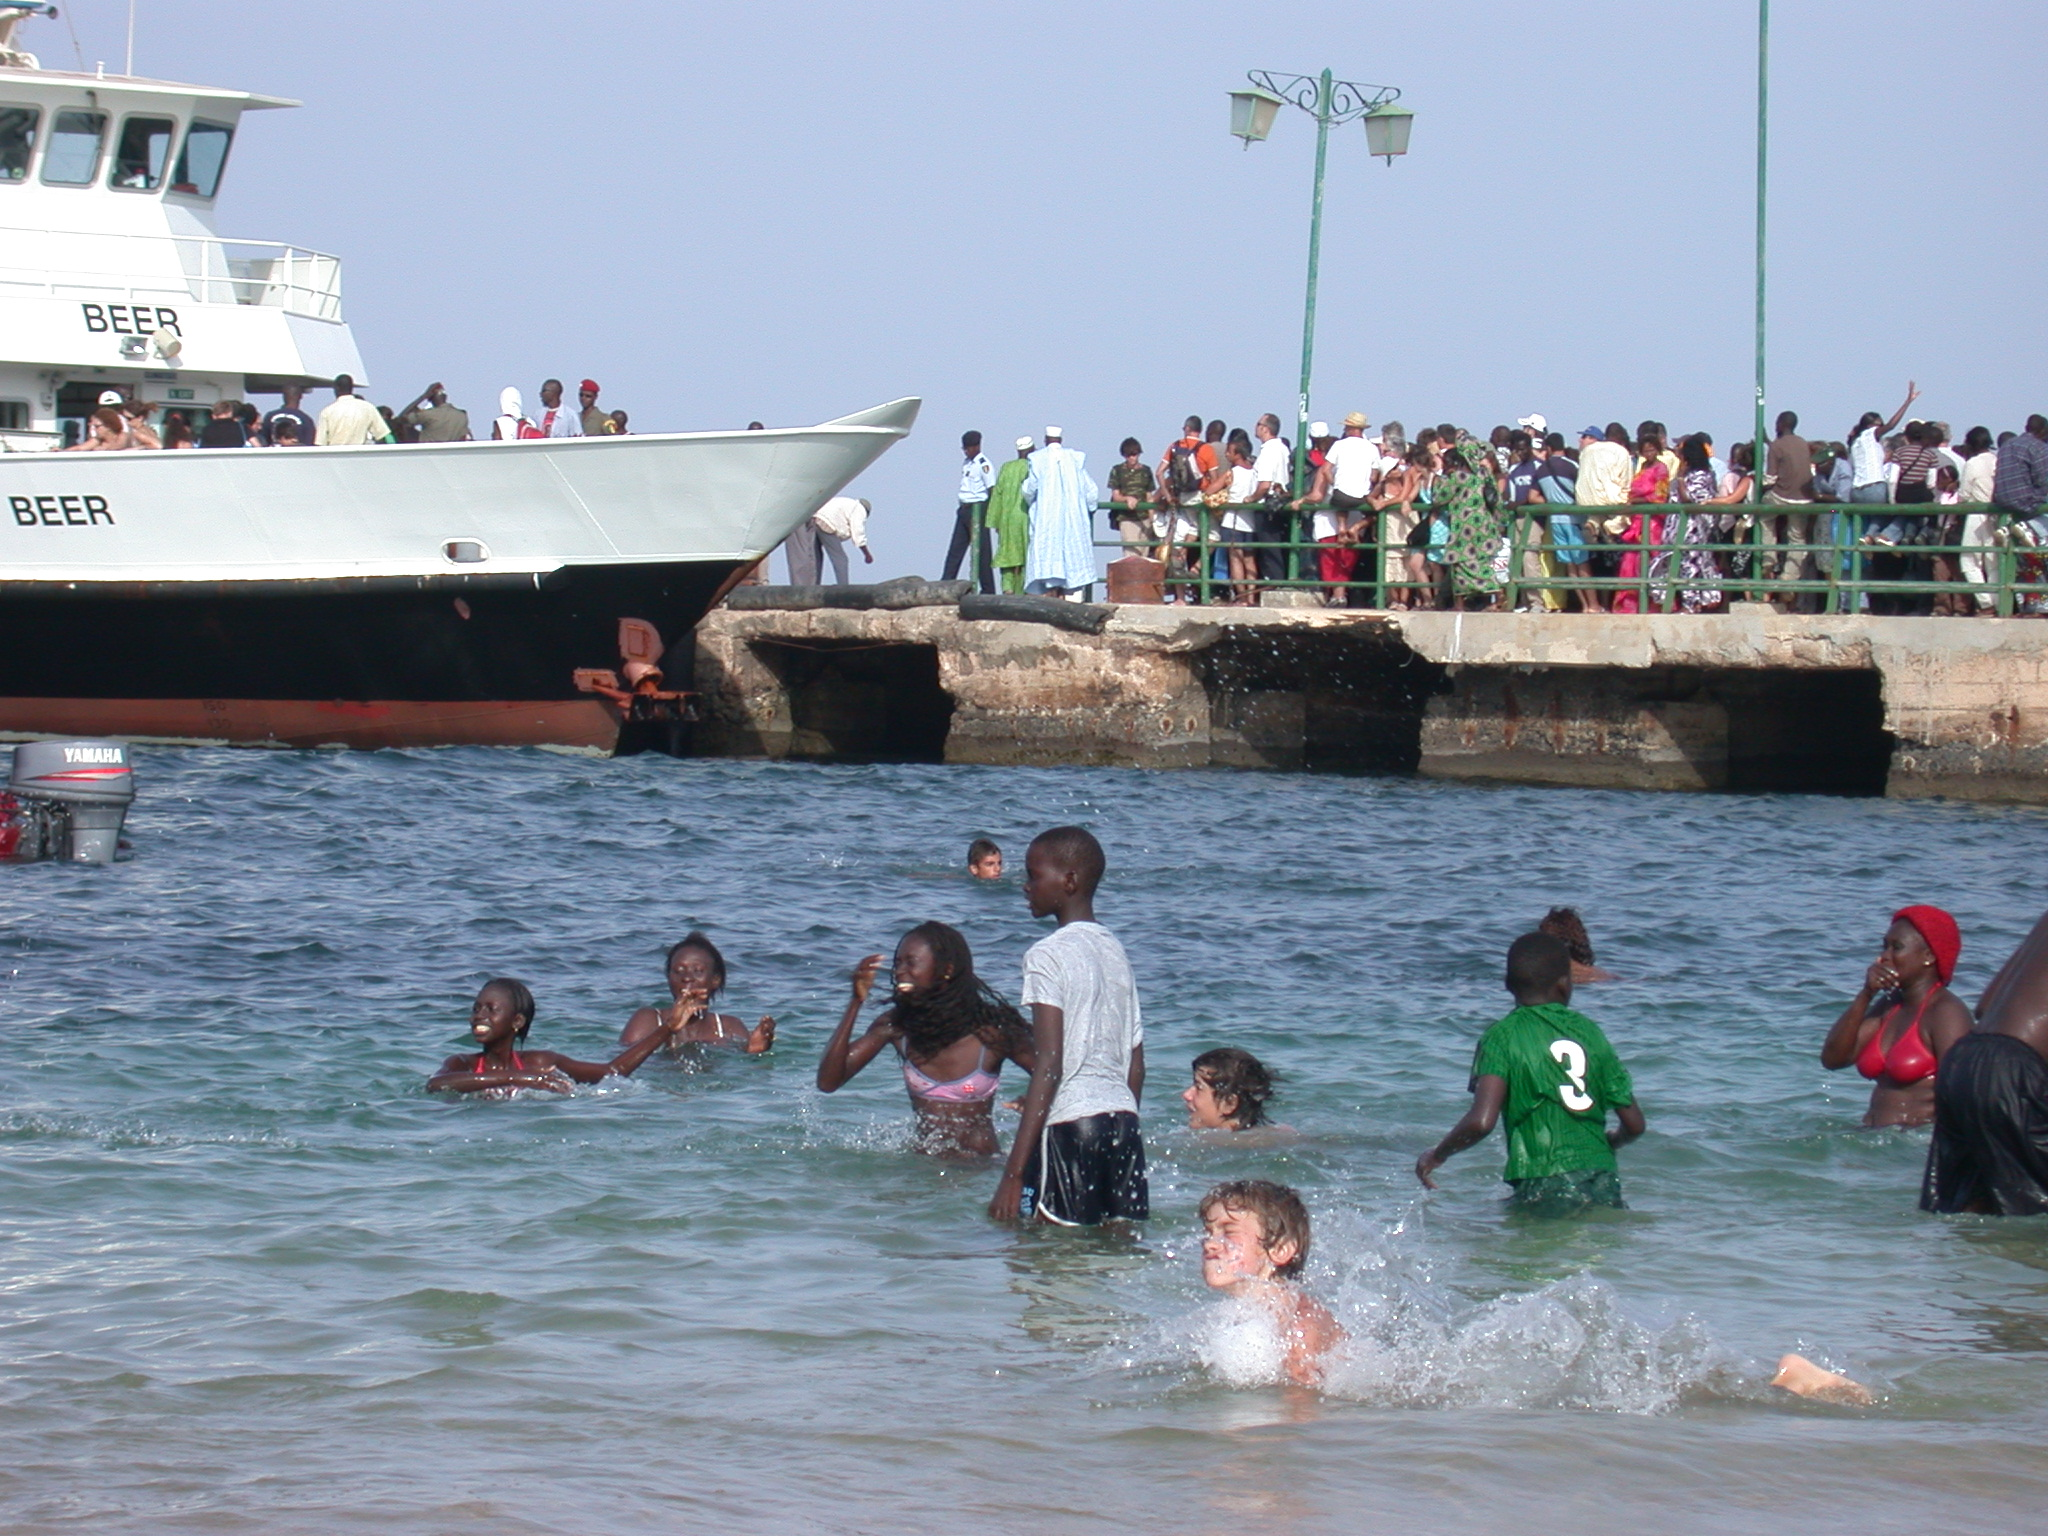 Another Beach View With Ferry, Ile de Goree, Dakar, Senegal